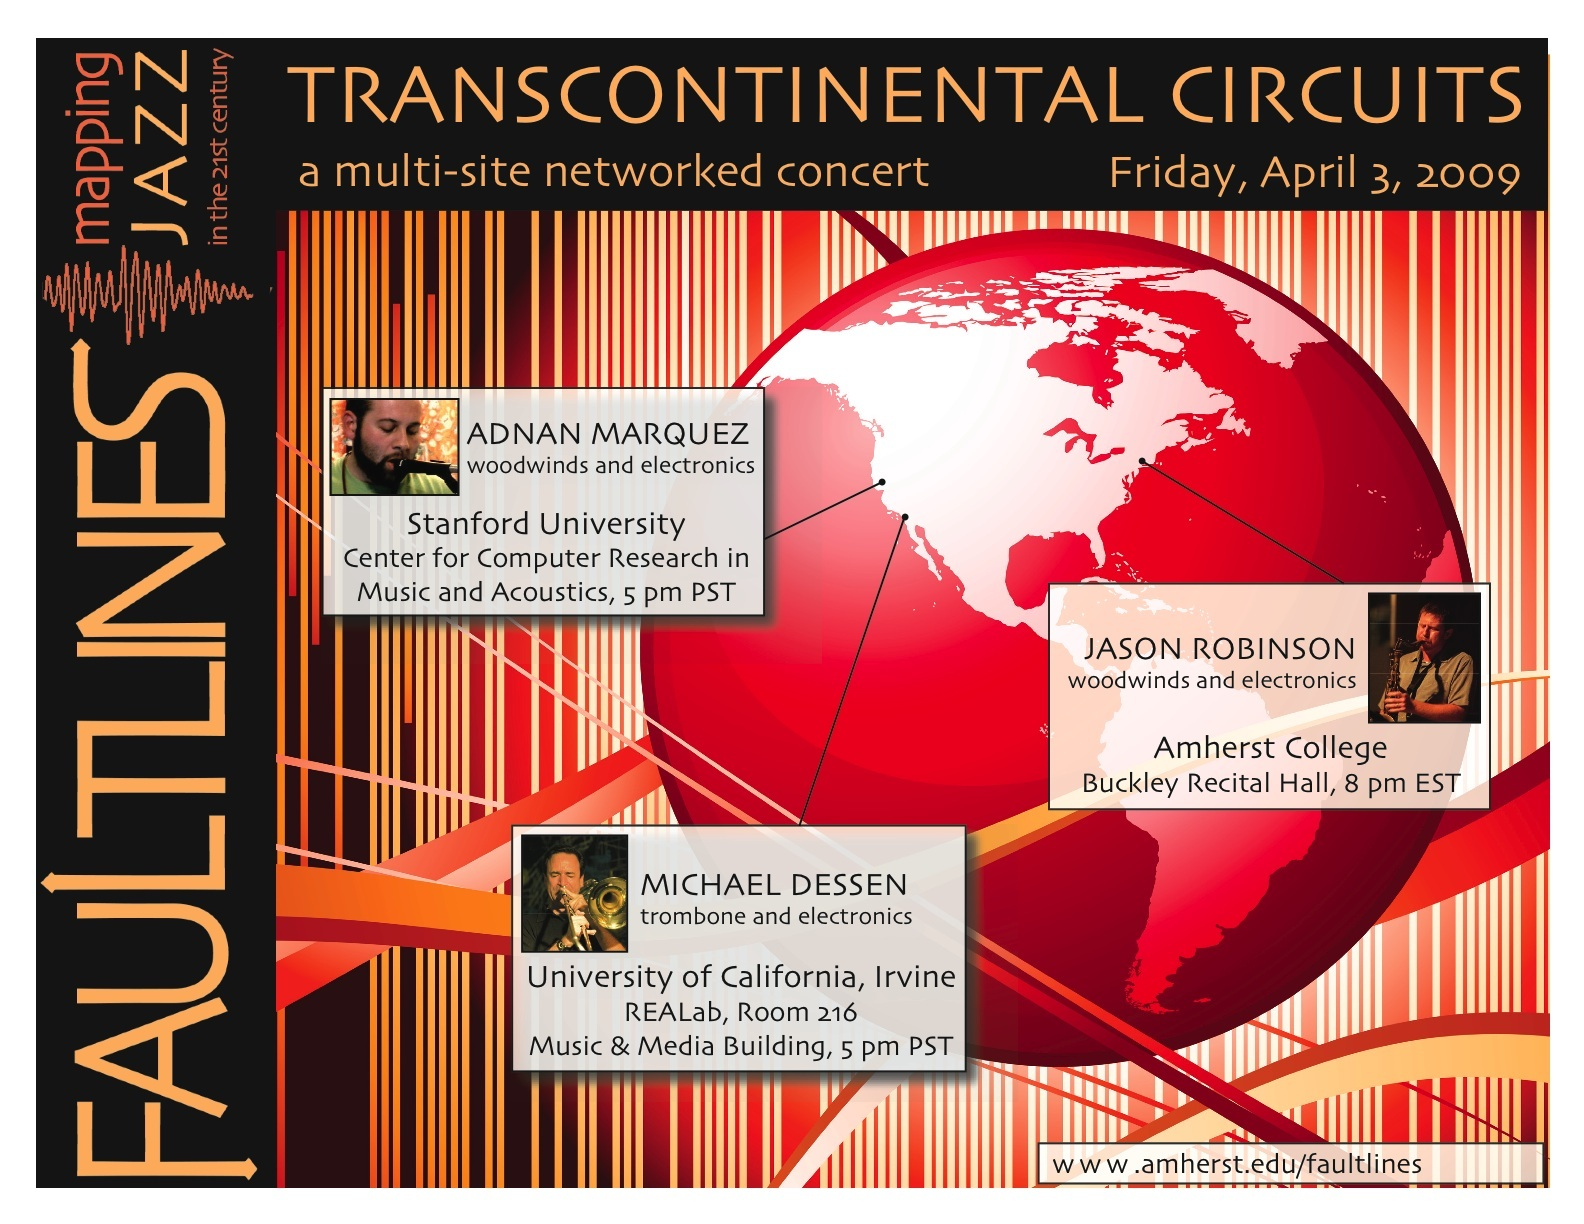 Transcontinental Circuits